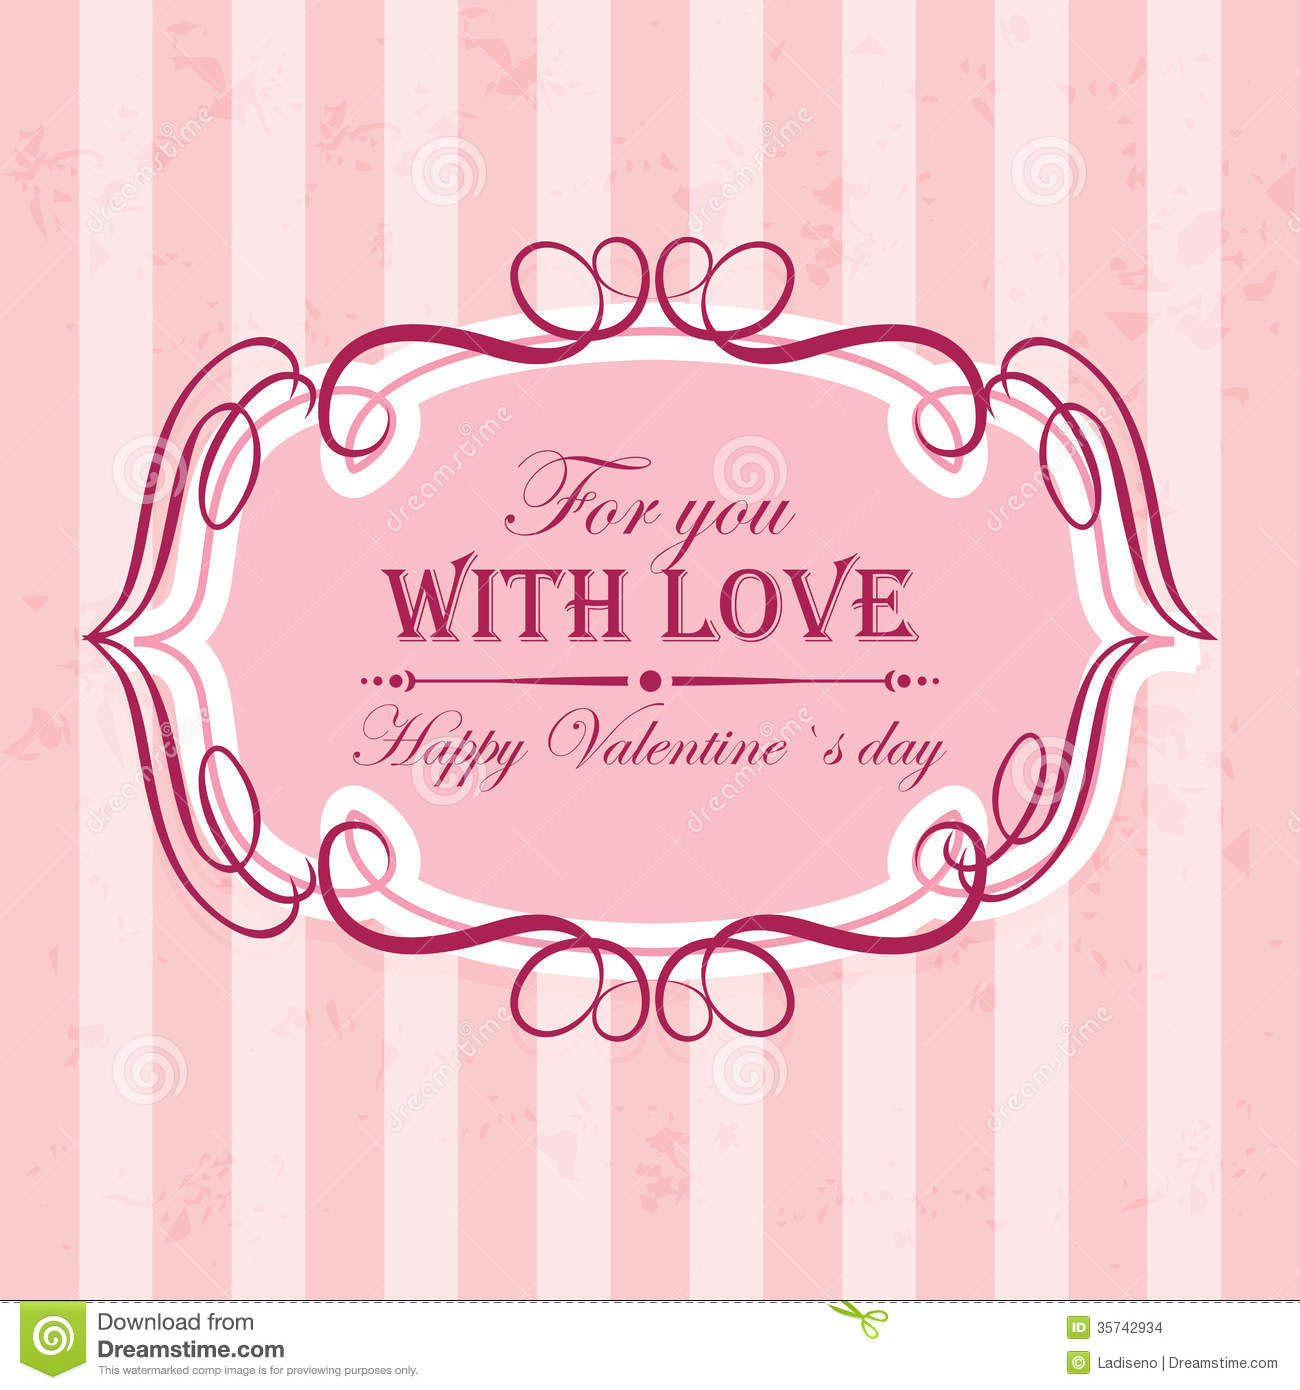 Valentines Day Images Image 35742934 – Valentine Day Label